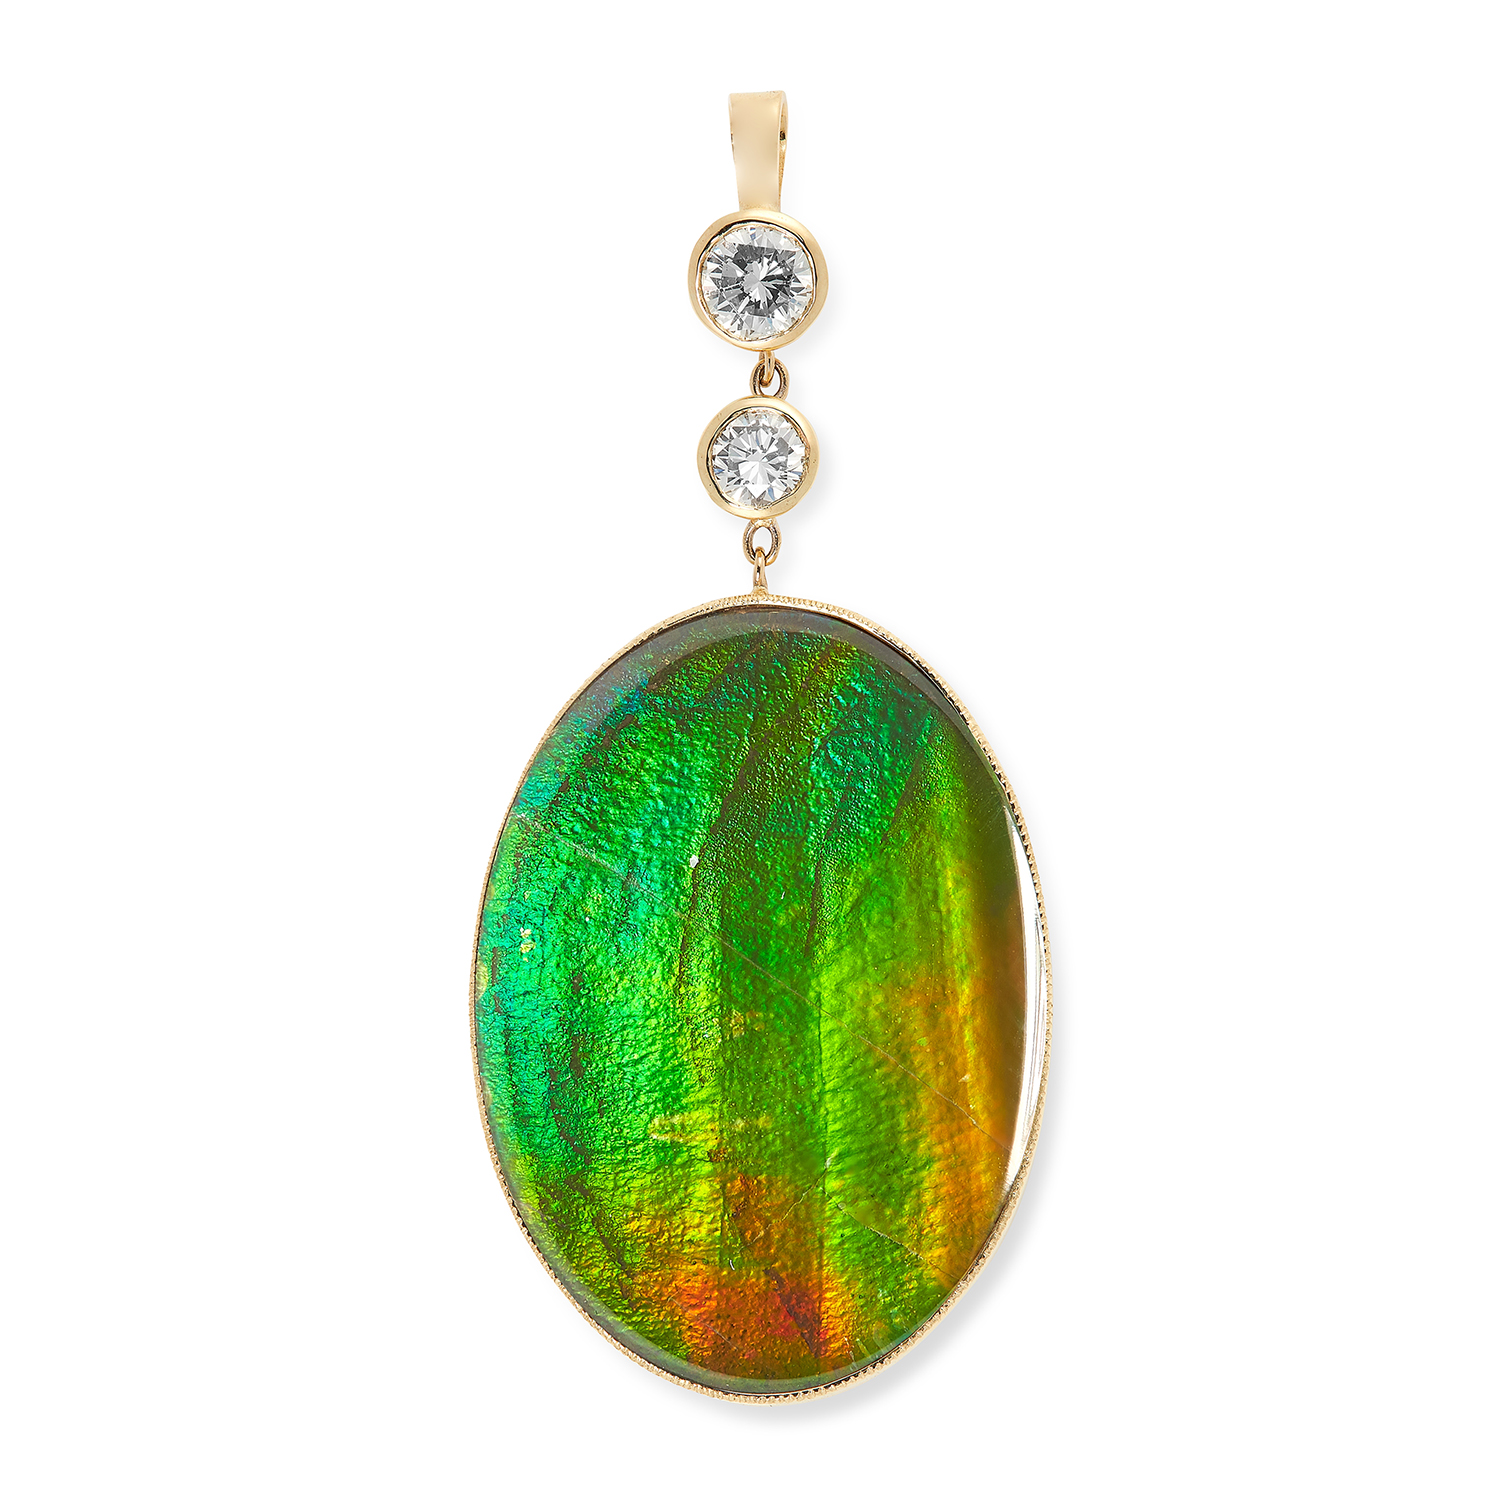 Los 32 - AN AMMOLITE AND DIAMOND PENDANT comprising of a large oval ammolite cabochon below two round cut